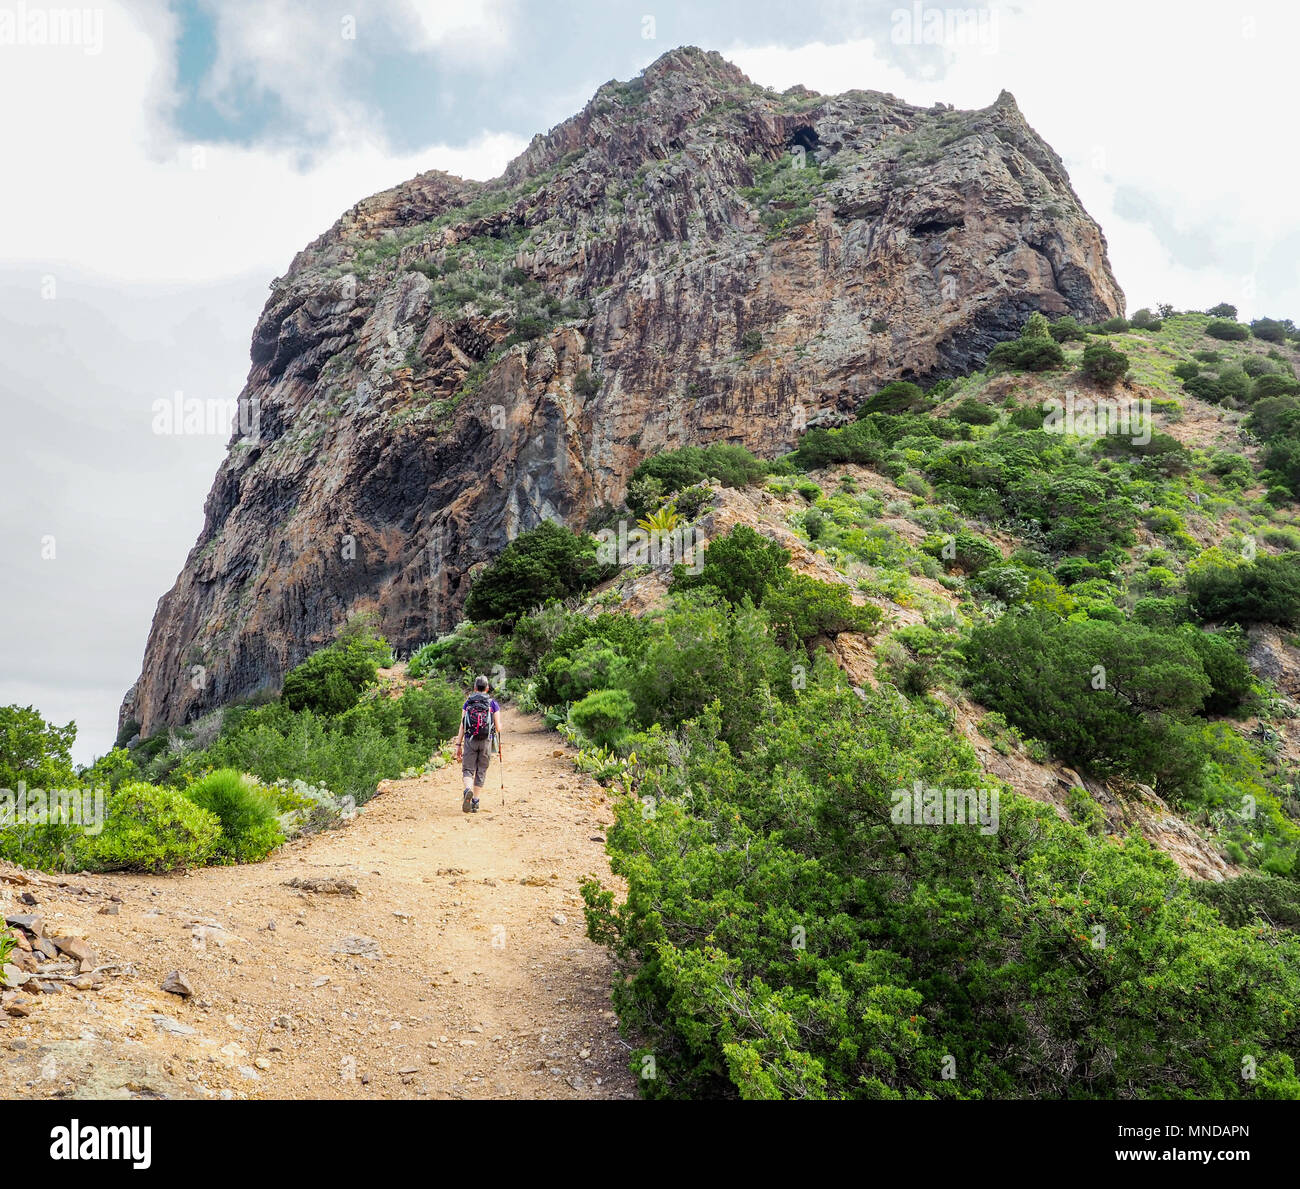 A female walker approaching Roque el Cano a basalt volcanic plug high above the little town of Vallehermoso on La Gomera in the Canary Islands - Stock Image